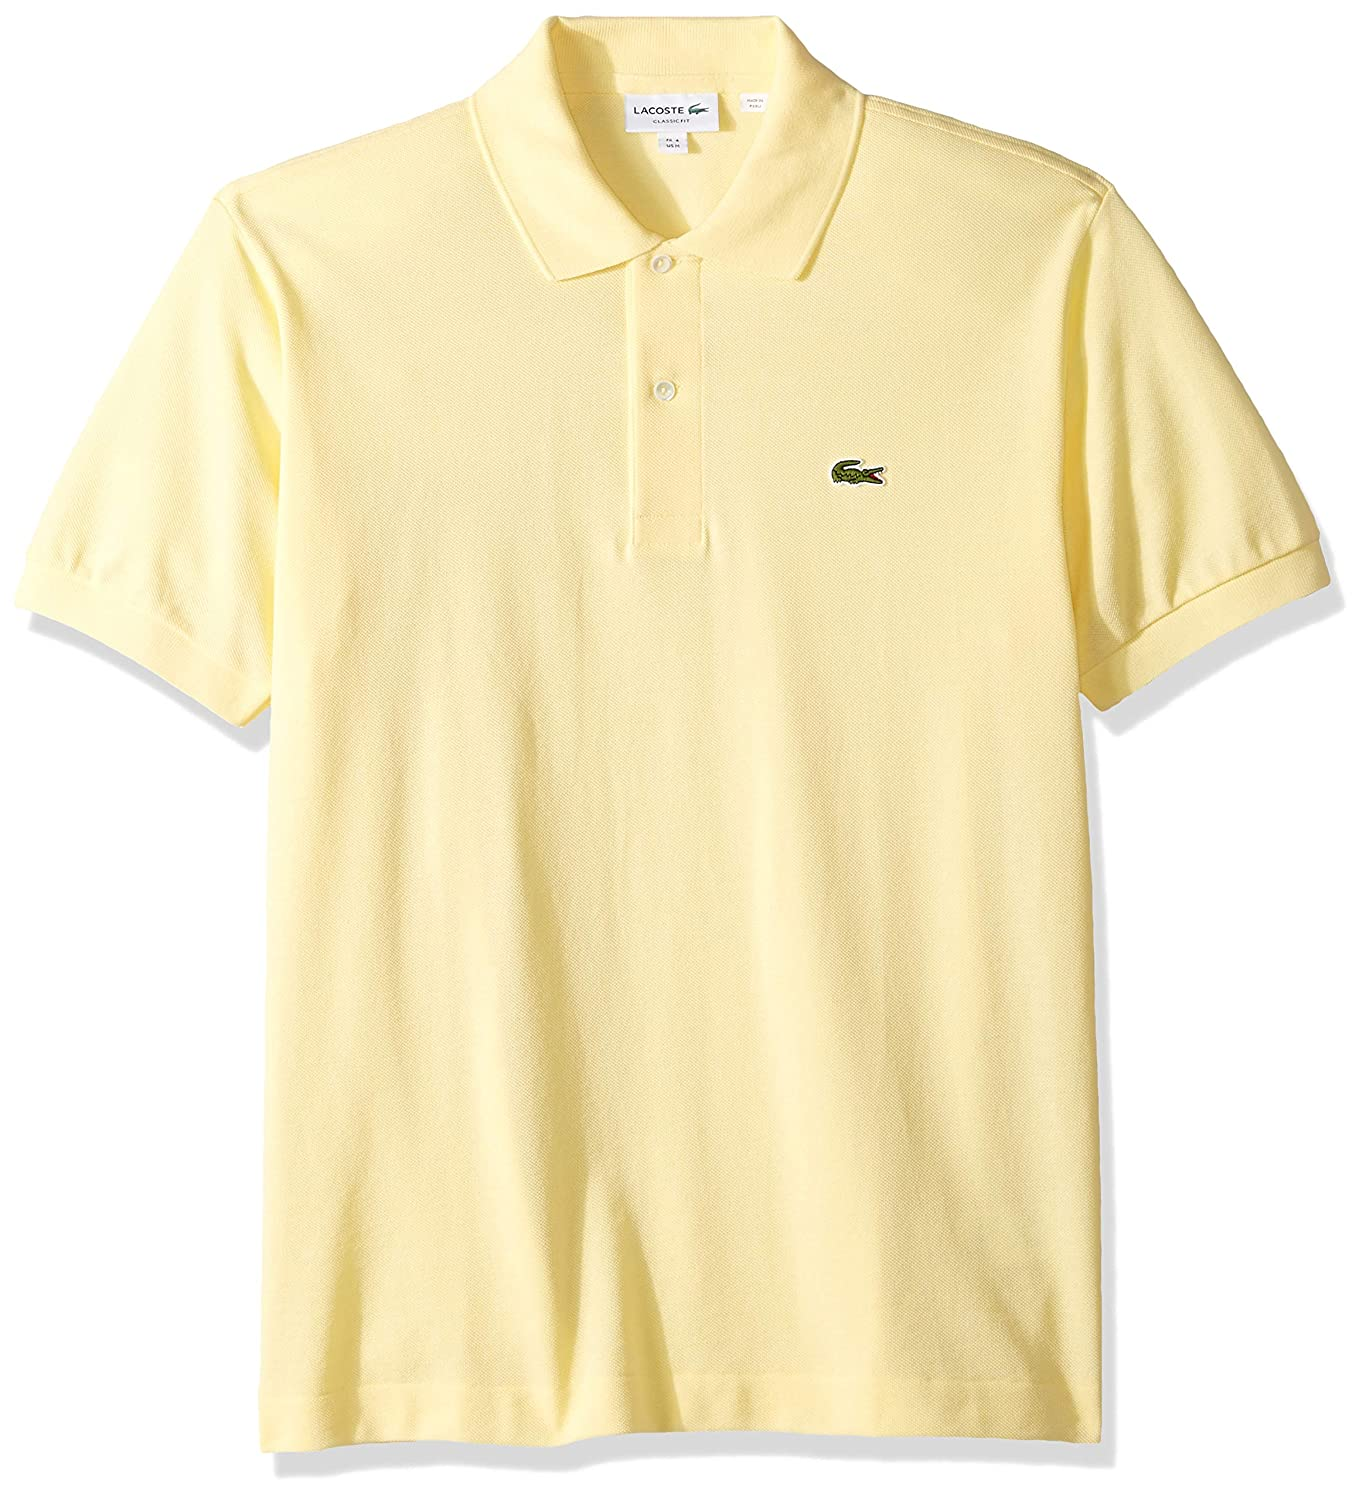 f260122e78 Lacoste Men's Short Sleeve Classic Pique Polo Shirt at Amazon Men's  Clothing store: